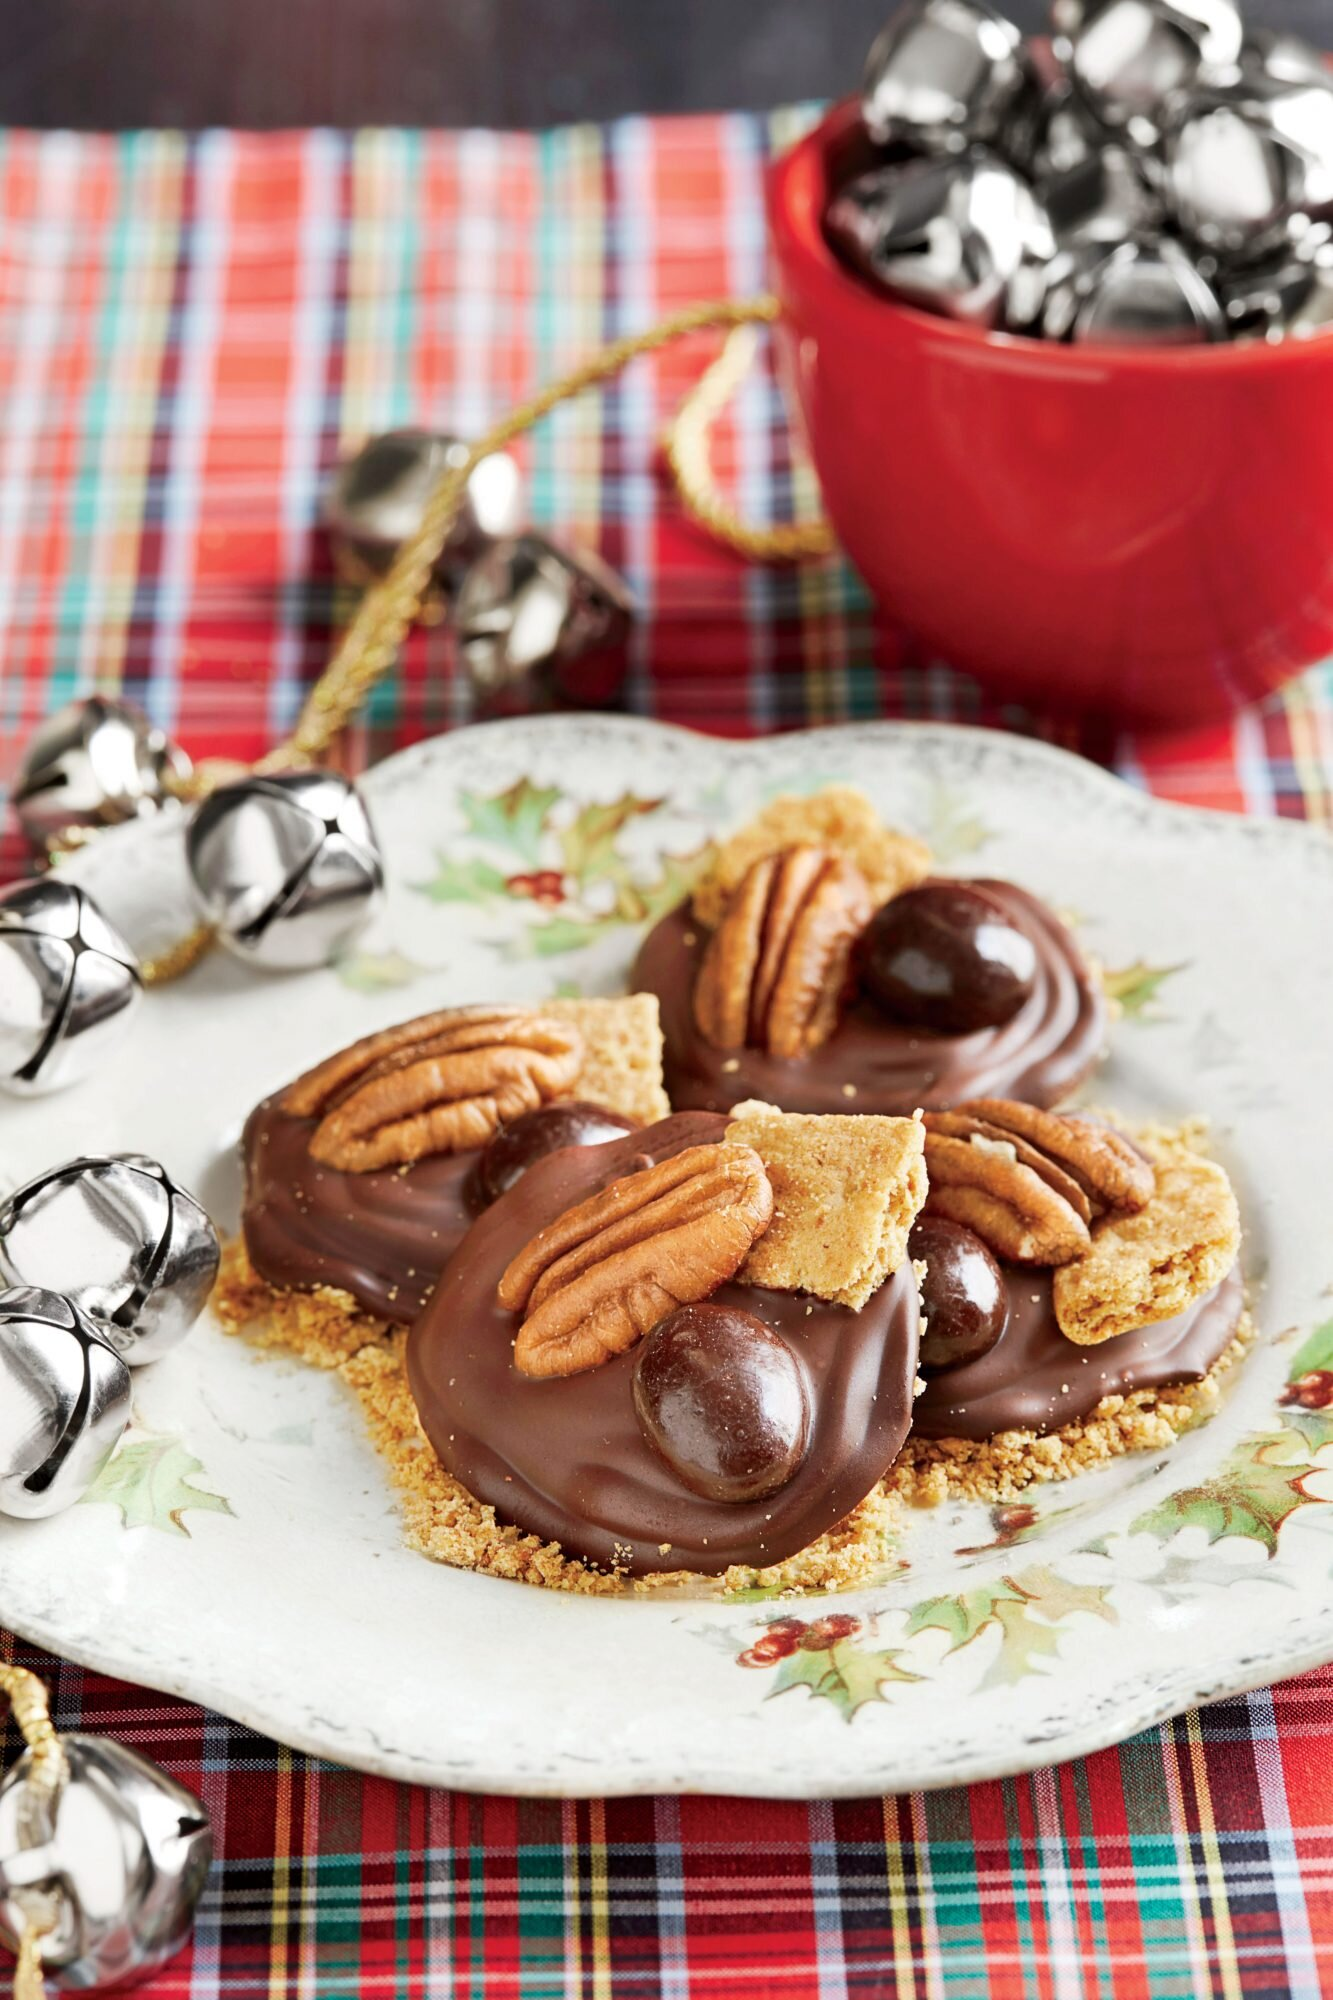 Giftworthy Christmas Candy Recipes Homemade Christmas Candy Ideas